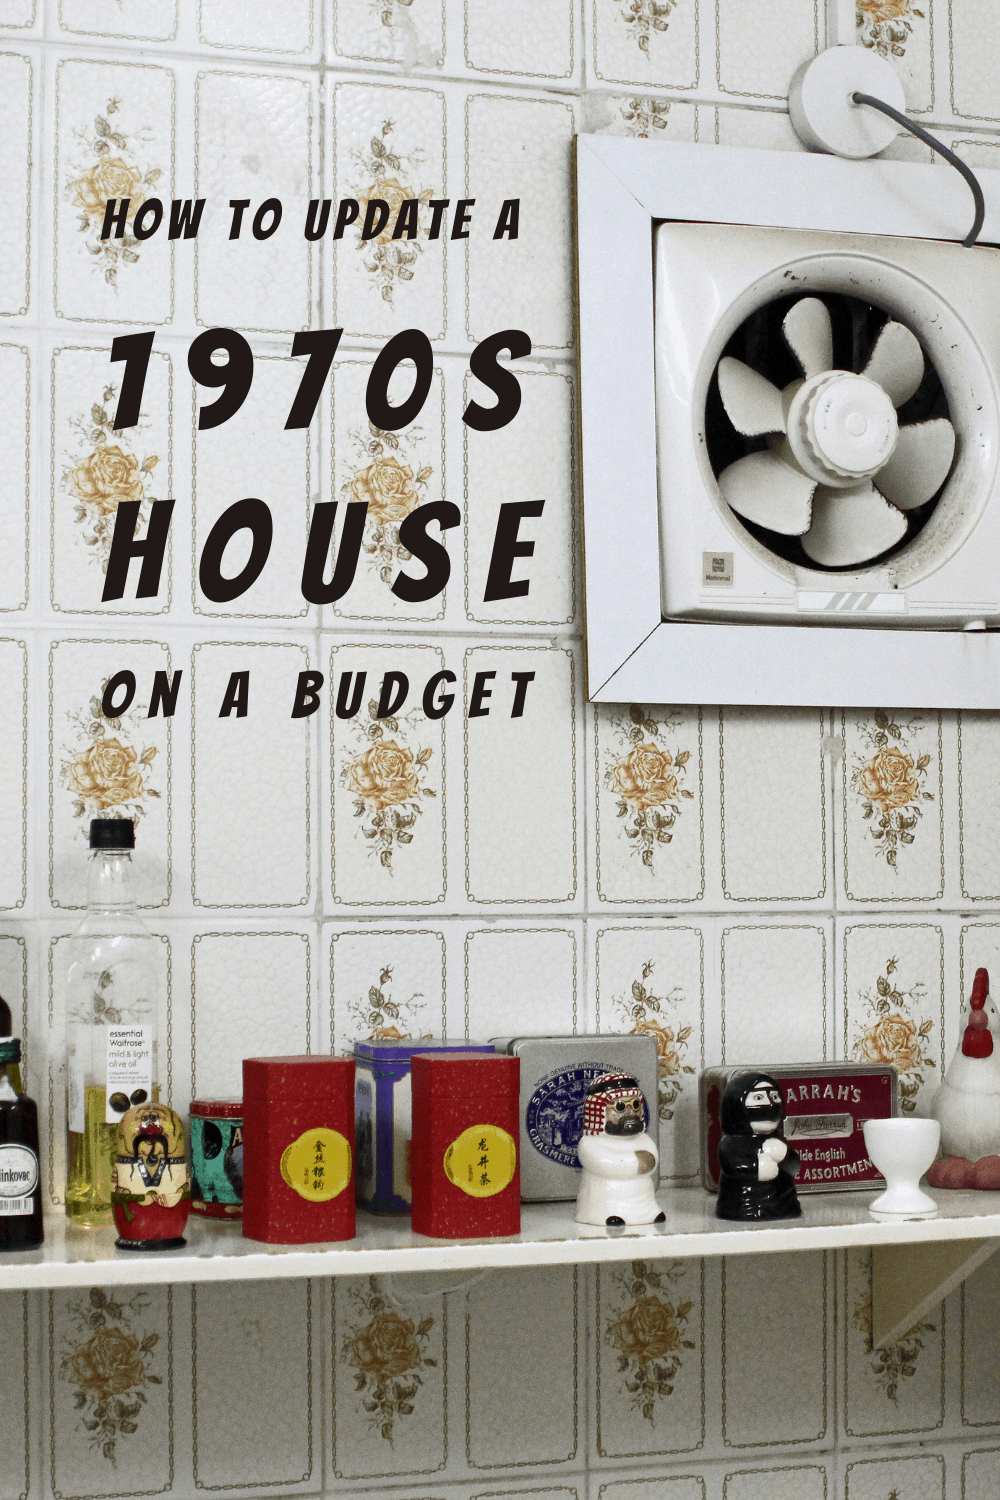 Old kitchen, with fan, wallpaper and knick-knacks. Text says How to Update a 1970s House on a budget